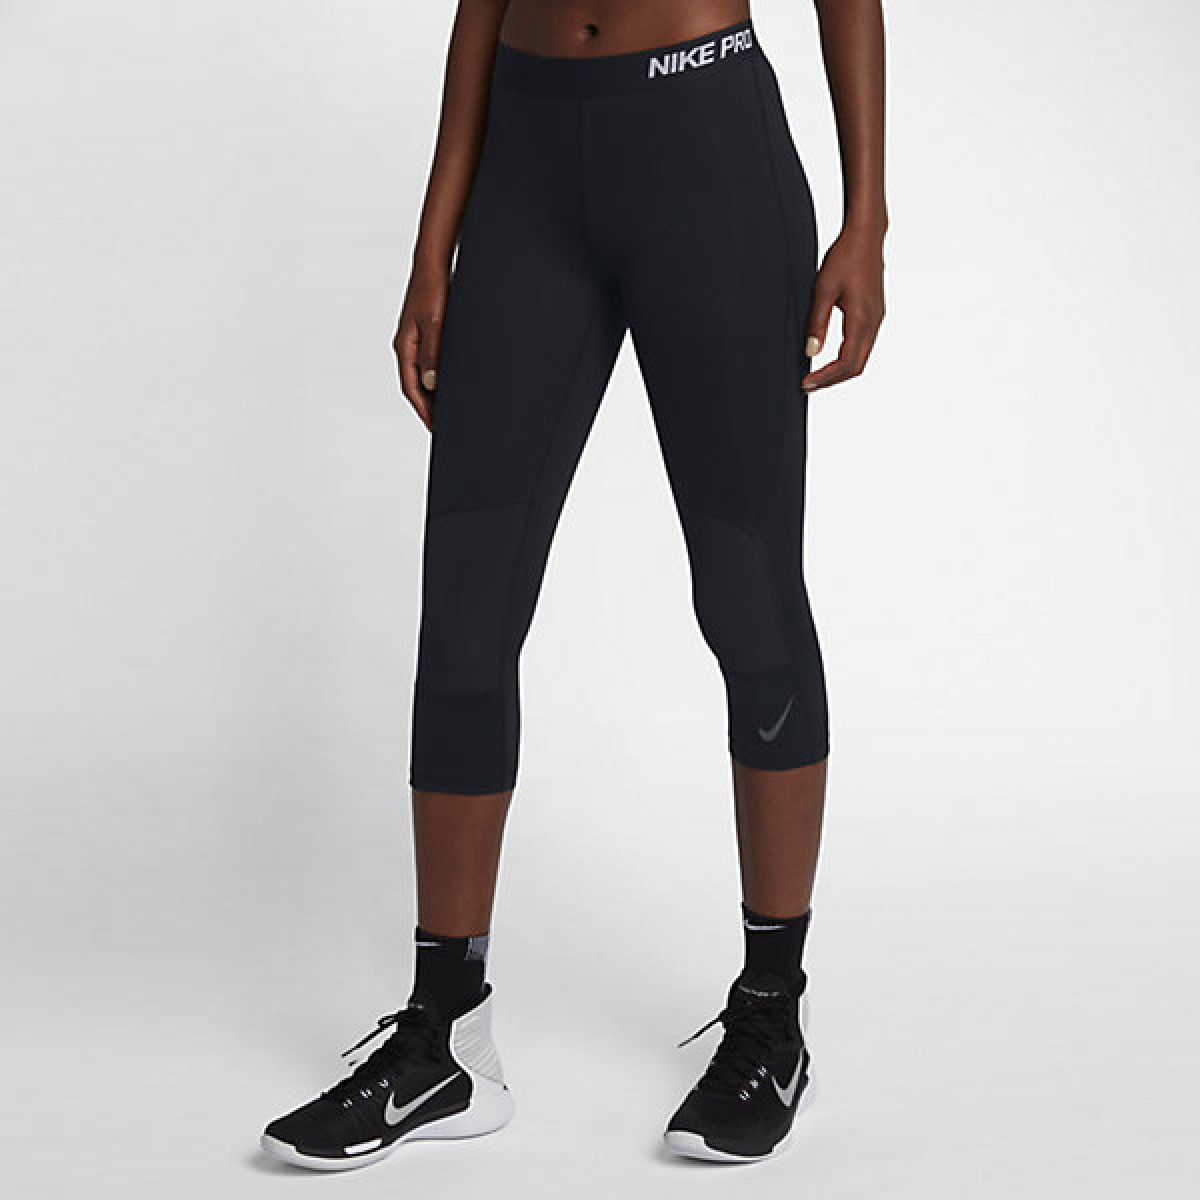 Nike Women Pro Basketball Tight 'Black'